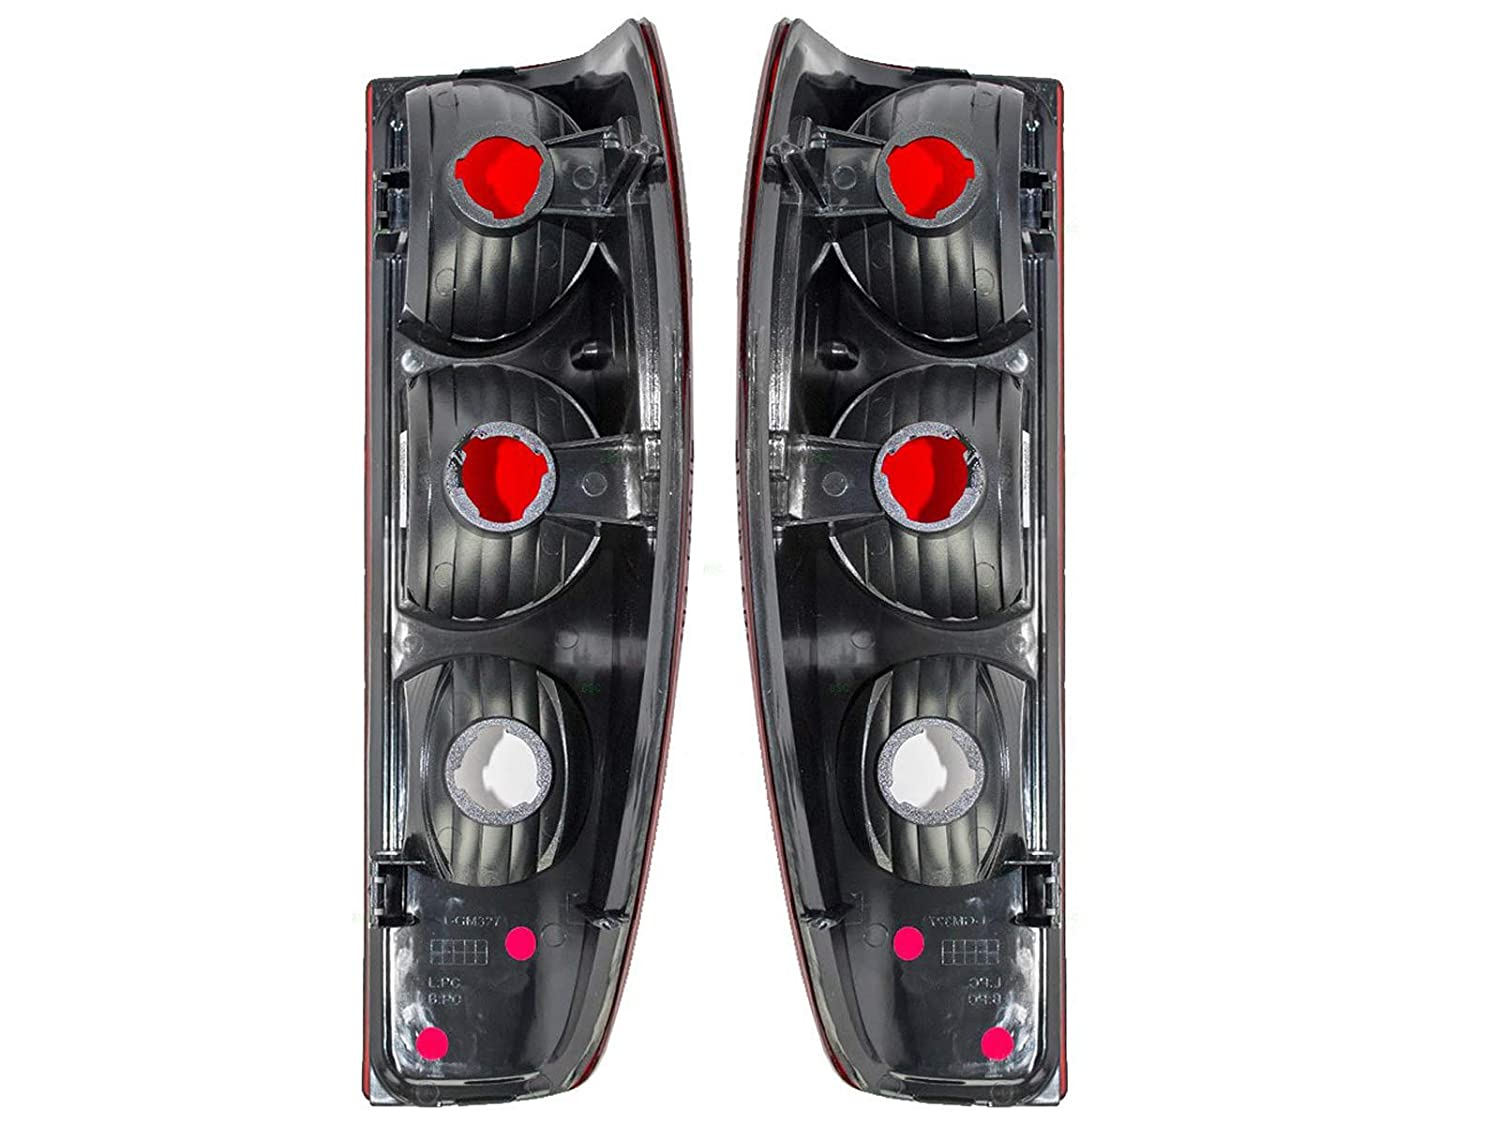 2004-2012 Chevrolet/Chevy Colorado & GMC Canyon, 2006 Isuzu i-280 i-350, 2007-08 i-290, i-370 Taillight Taillamp Rear Brake Tail Light Lamp Pair Set ...